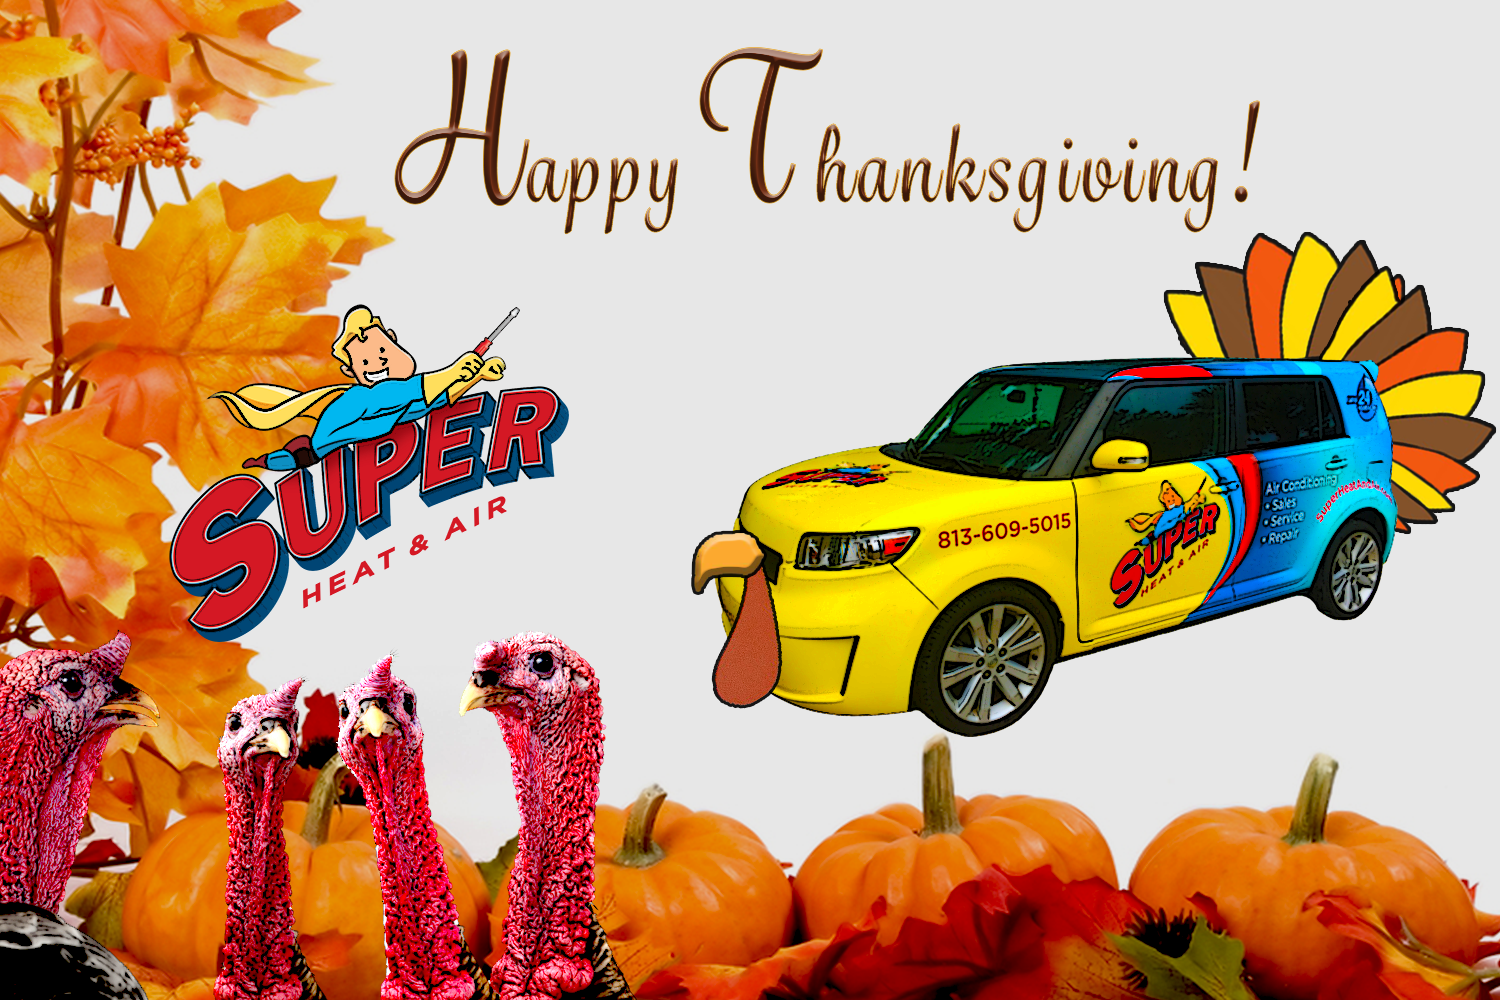 Happy Thanksgiving Eve Tampa Bay! In observance of the